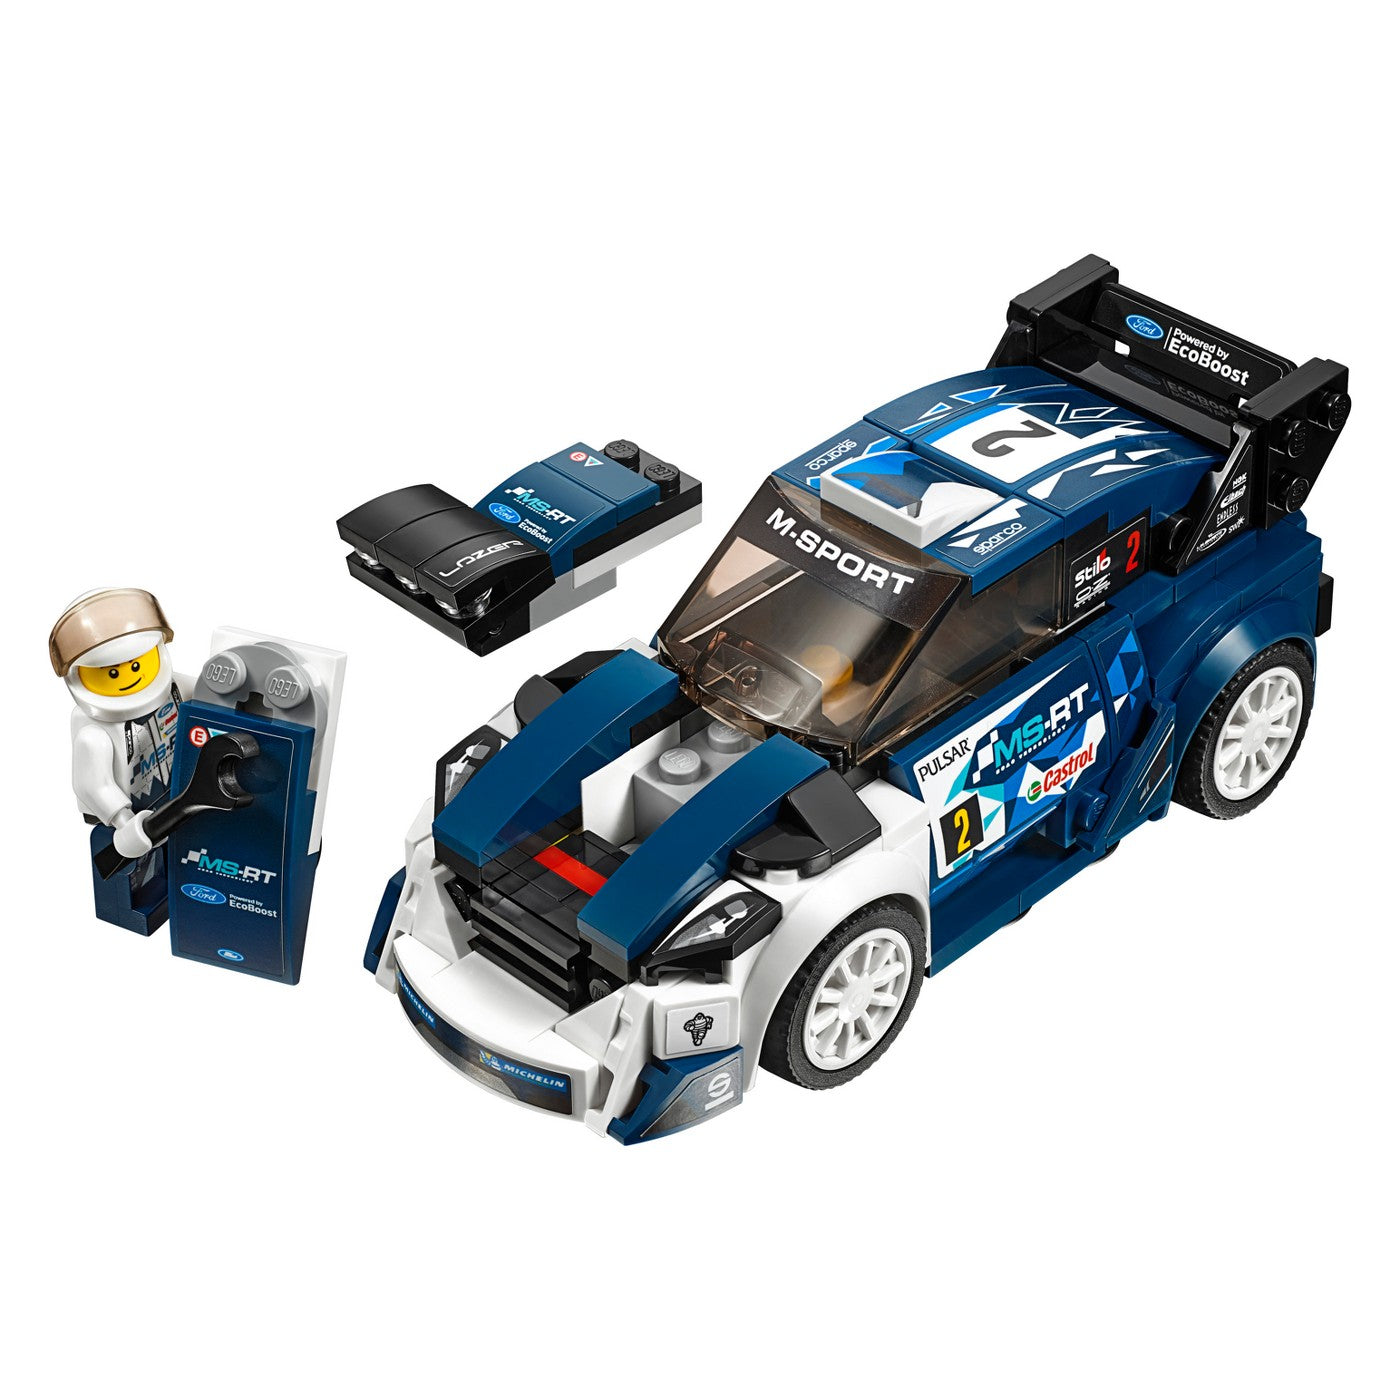 LEGO-75885-Speed Champions Ford Fiesta M-Sport WRC-New in Sealed Box!